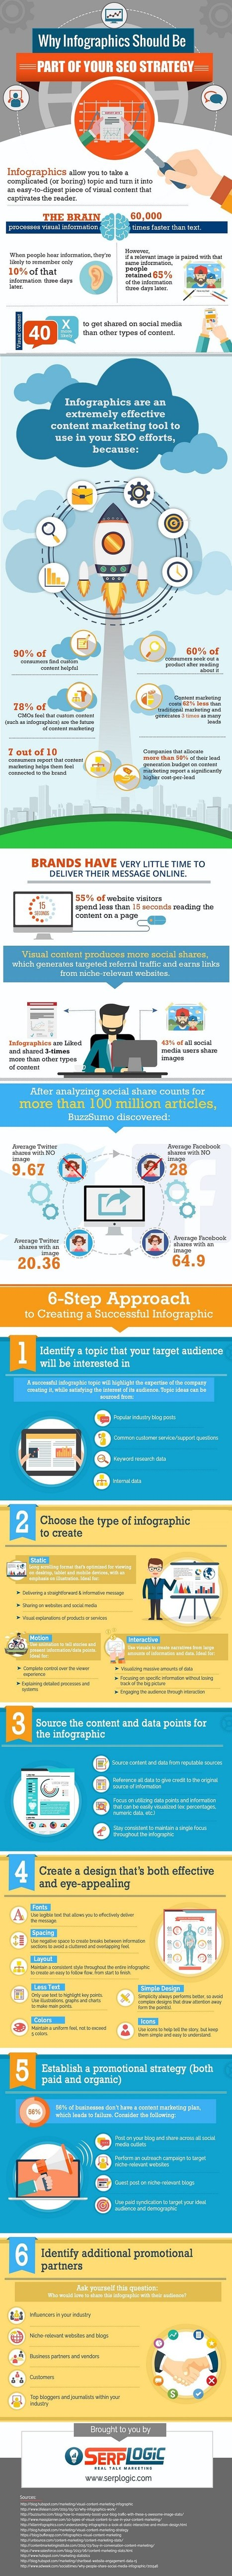 Six Steps to Creating a Successful Infographic for Your Business [Infographic] | Soup for thought | Scoop.it